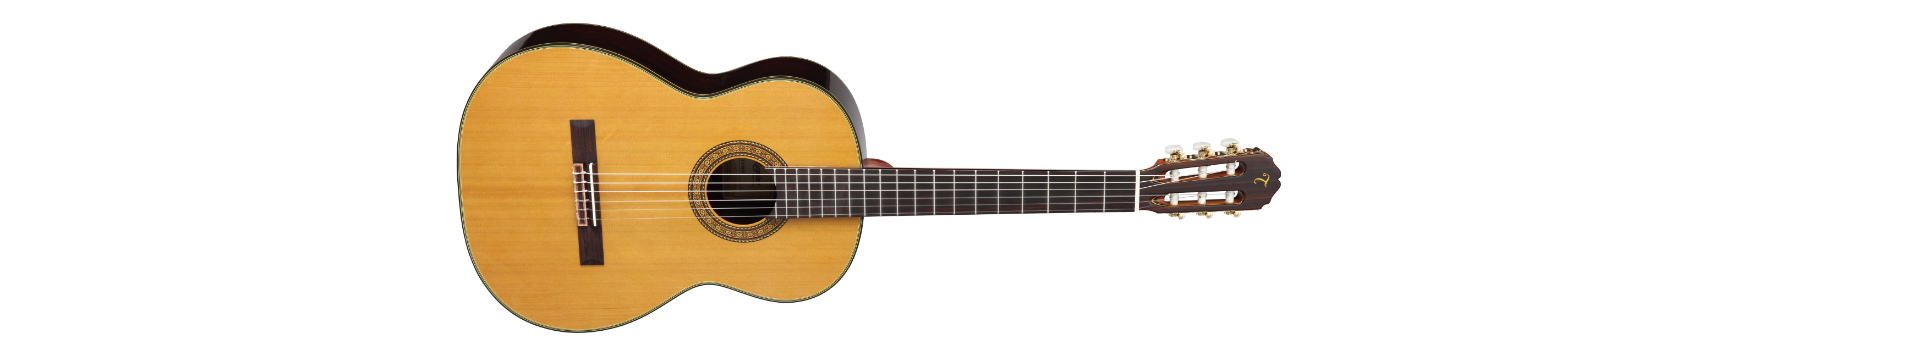 TAKAMINE C132S ACOUSTIC/ELECTRIC CLASSICAL